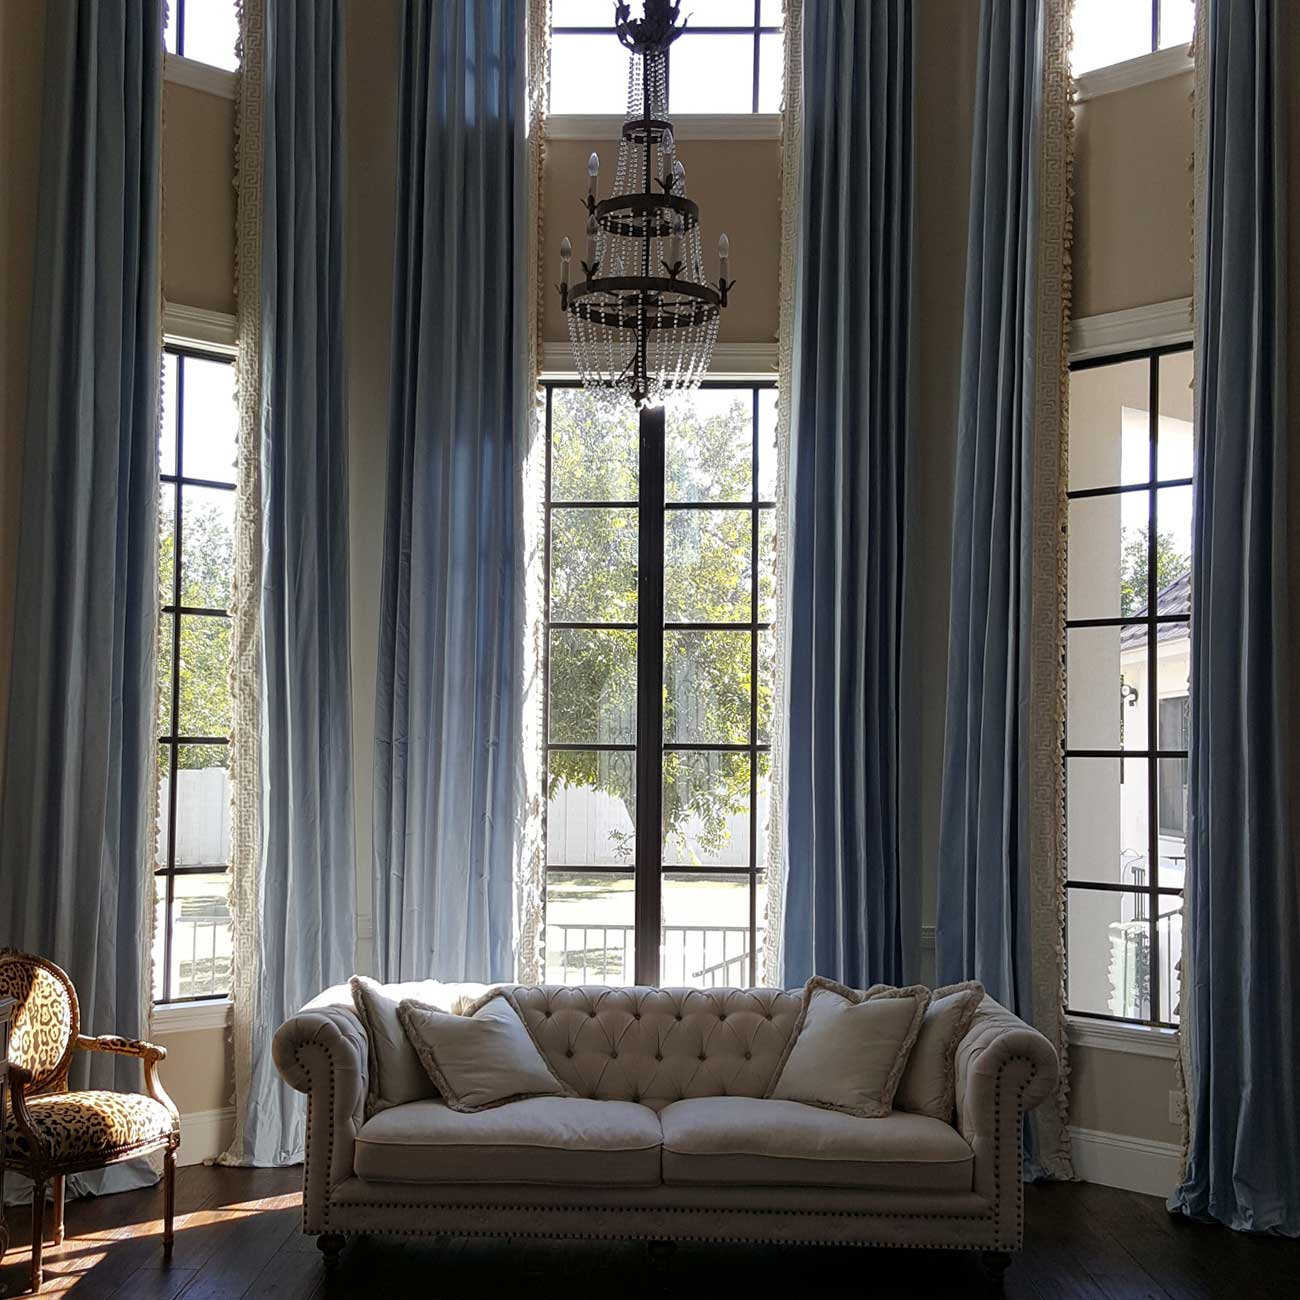 Blue curtain and white couch